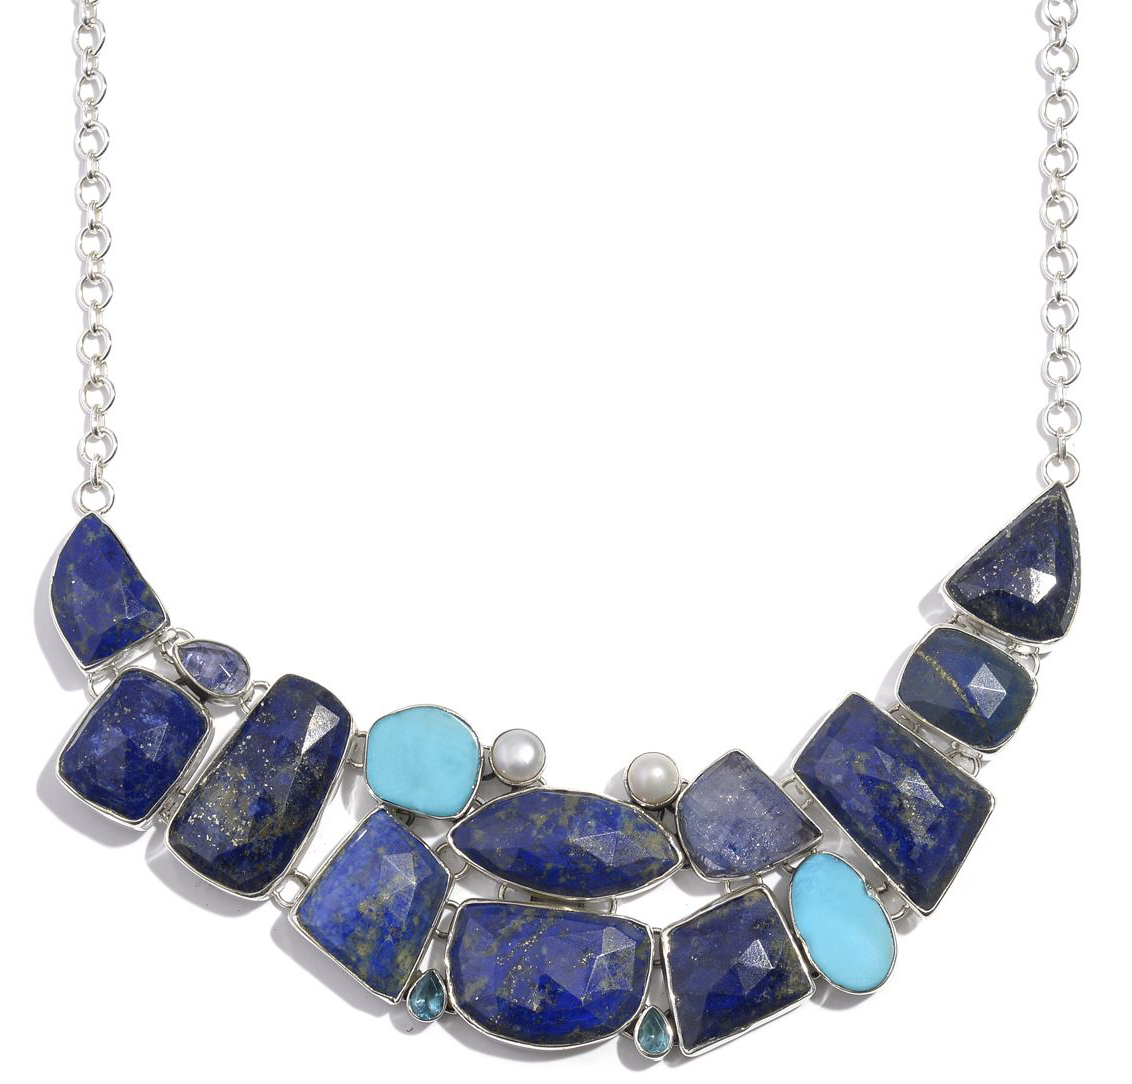 Fashion Week Roundup Jewelry - Artisan Crafted Lapis Lazuli, Multi Gemstone Sterling Silver Necklace